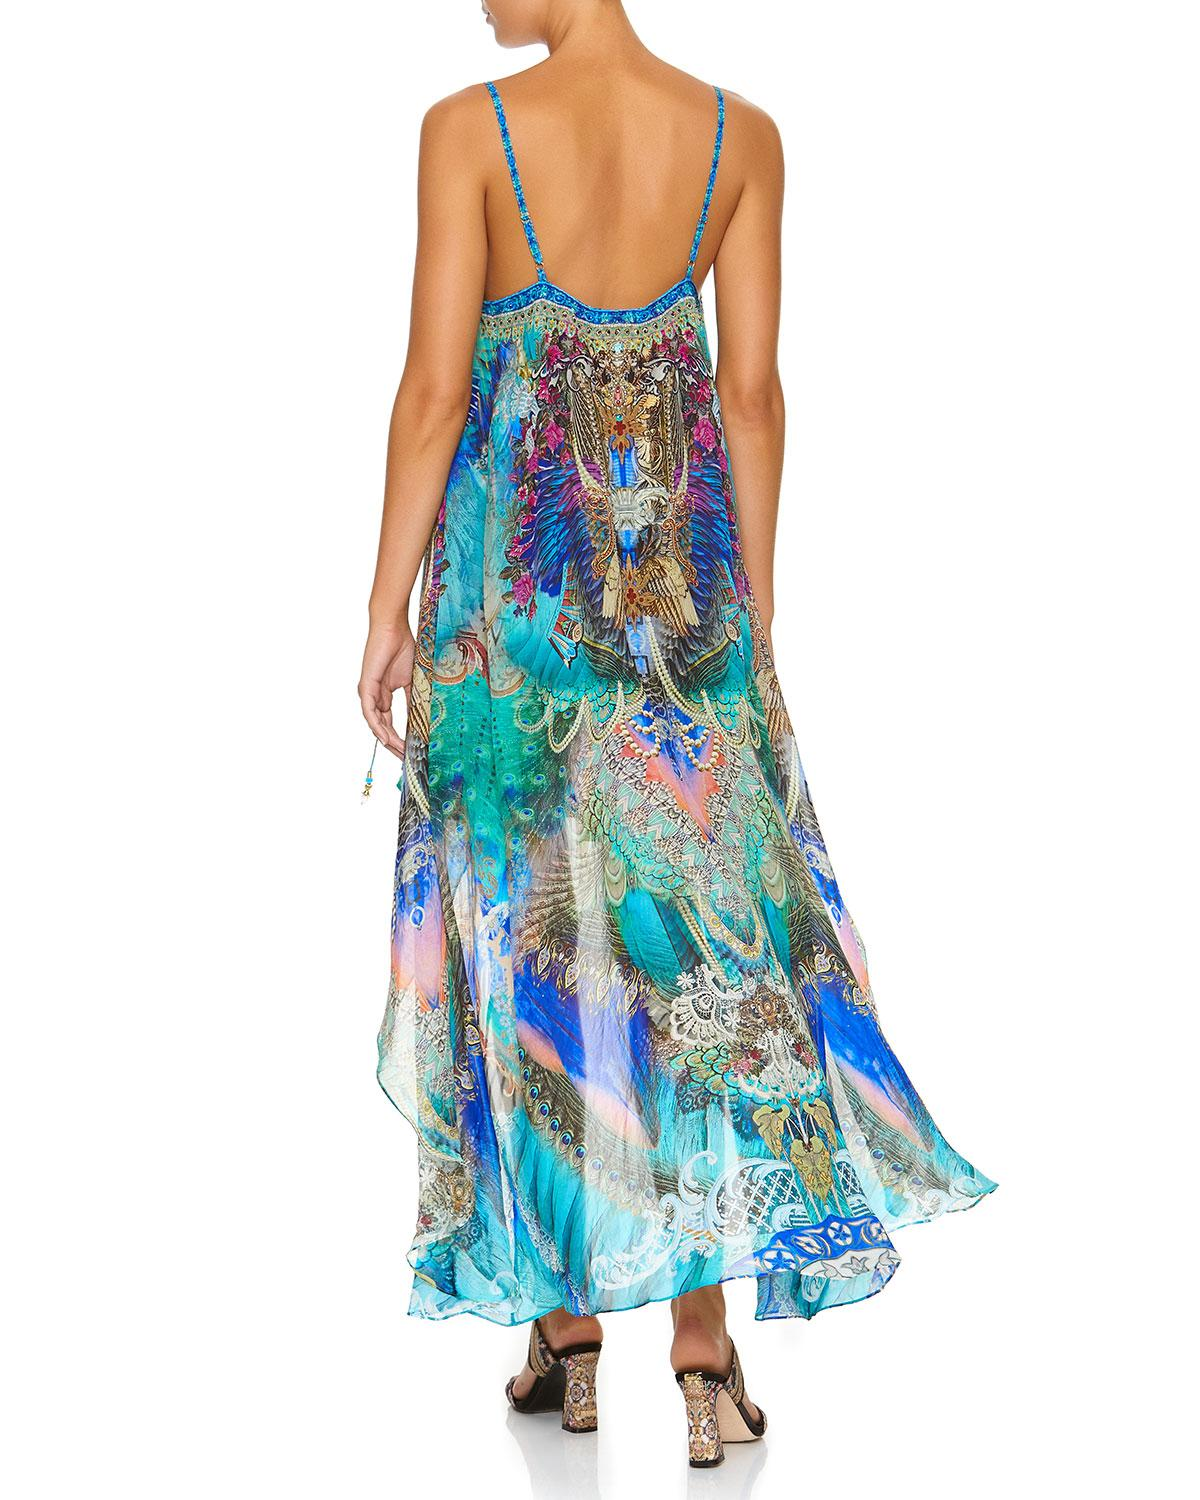 37697042f0a95 Lyst - Camilla Freedom Flight Mini Dress With Long Overlay in Blue